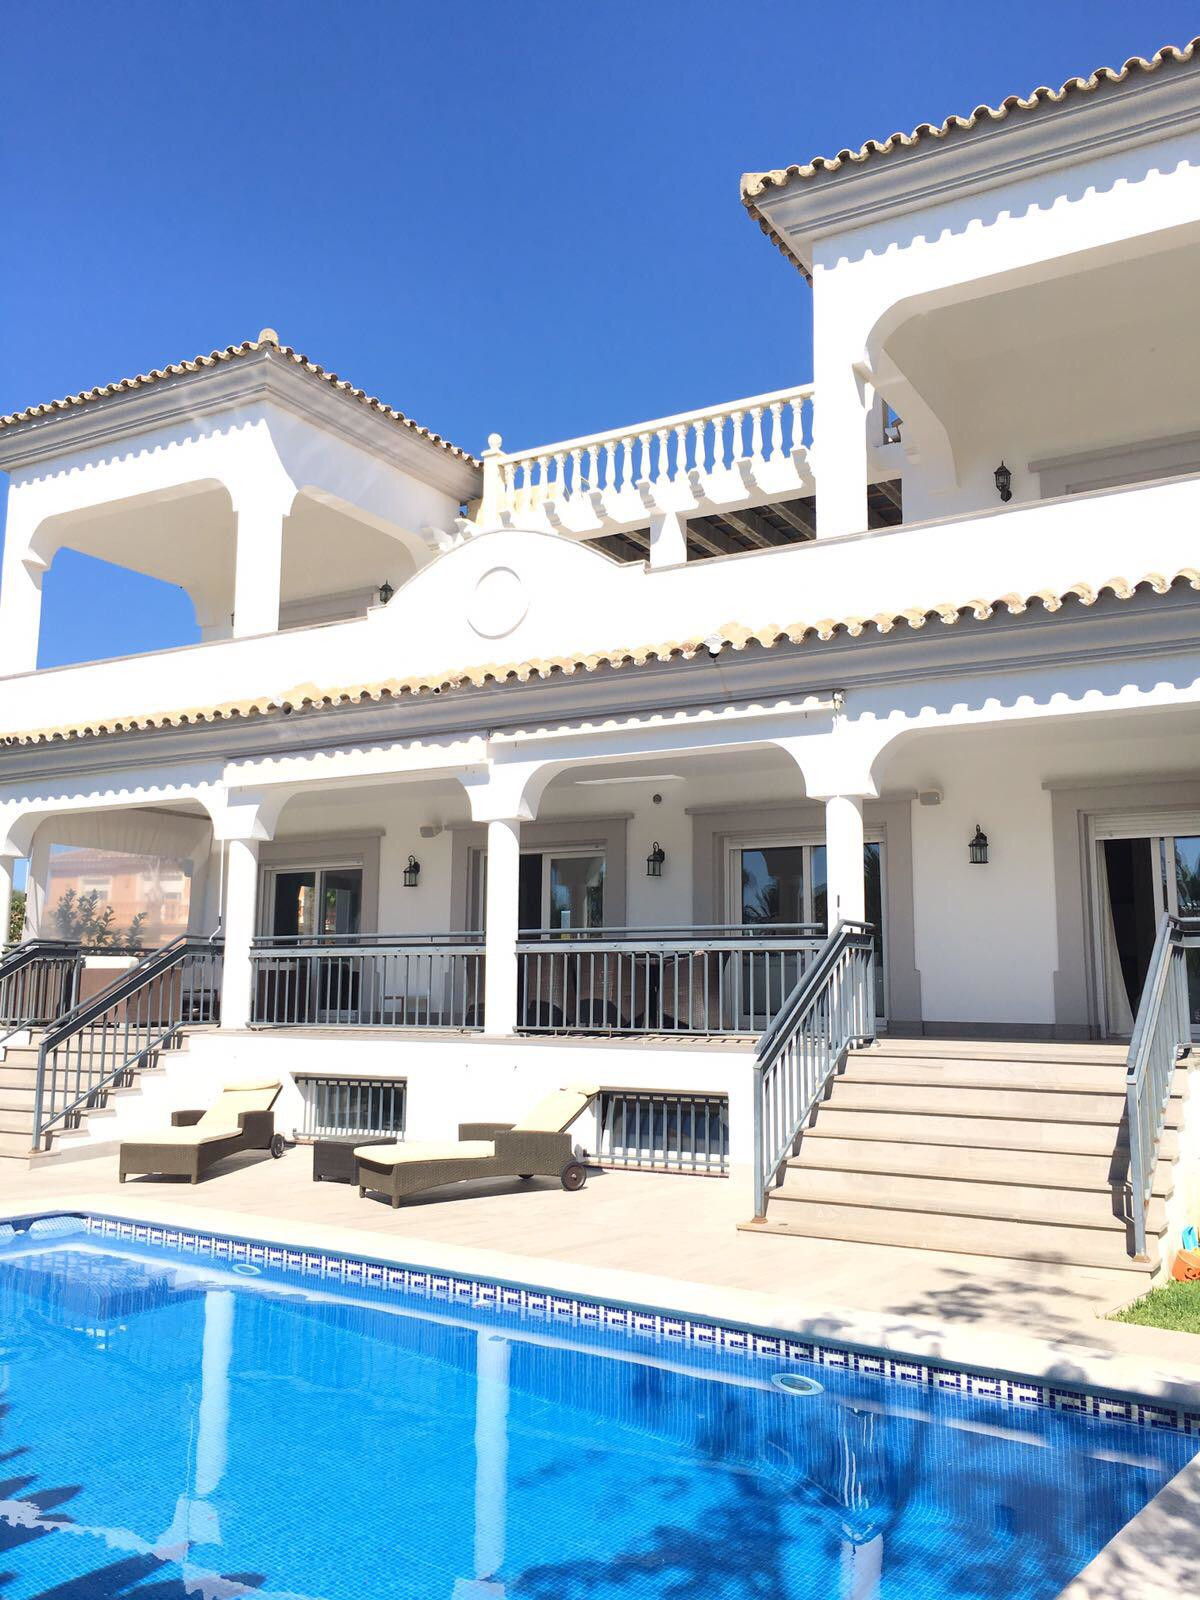 Villa - Detached ( R3522175) 31